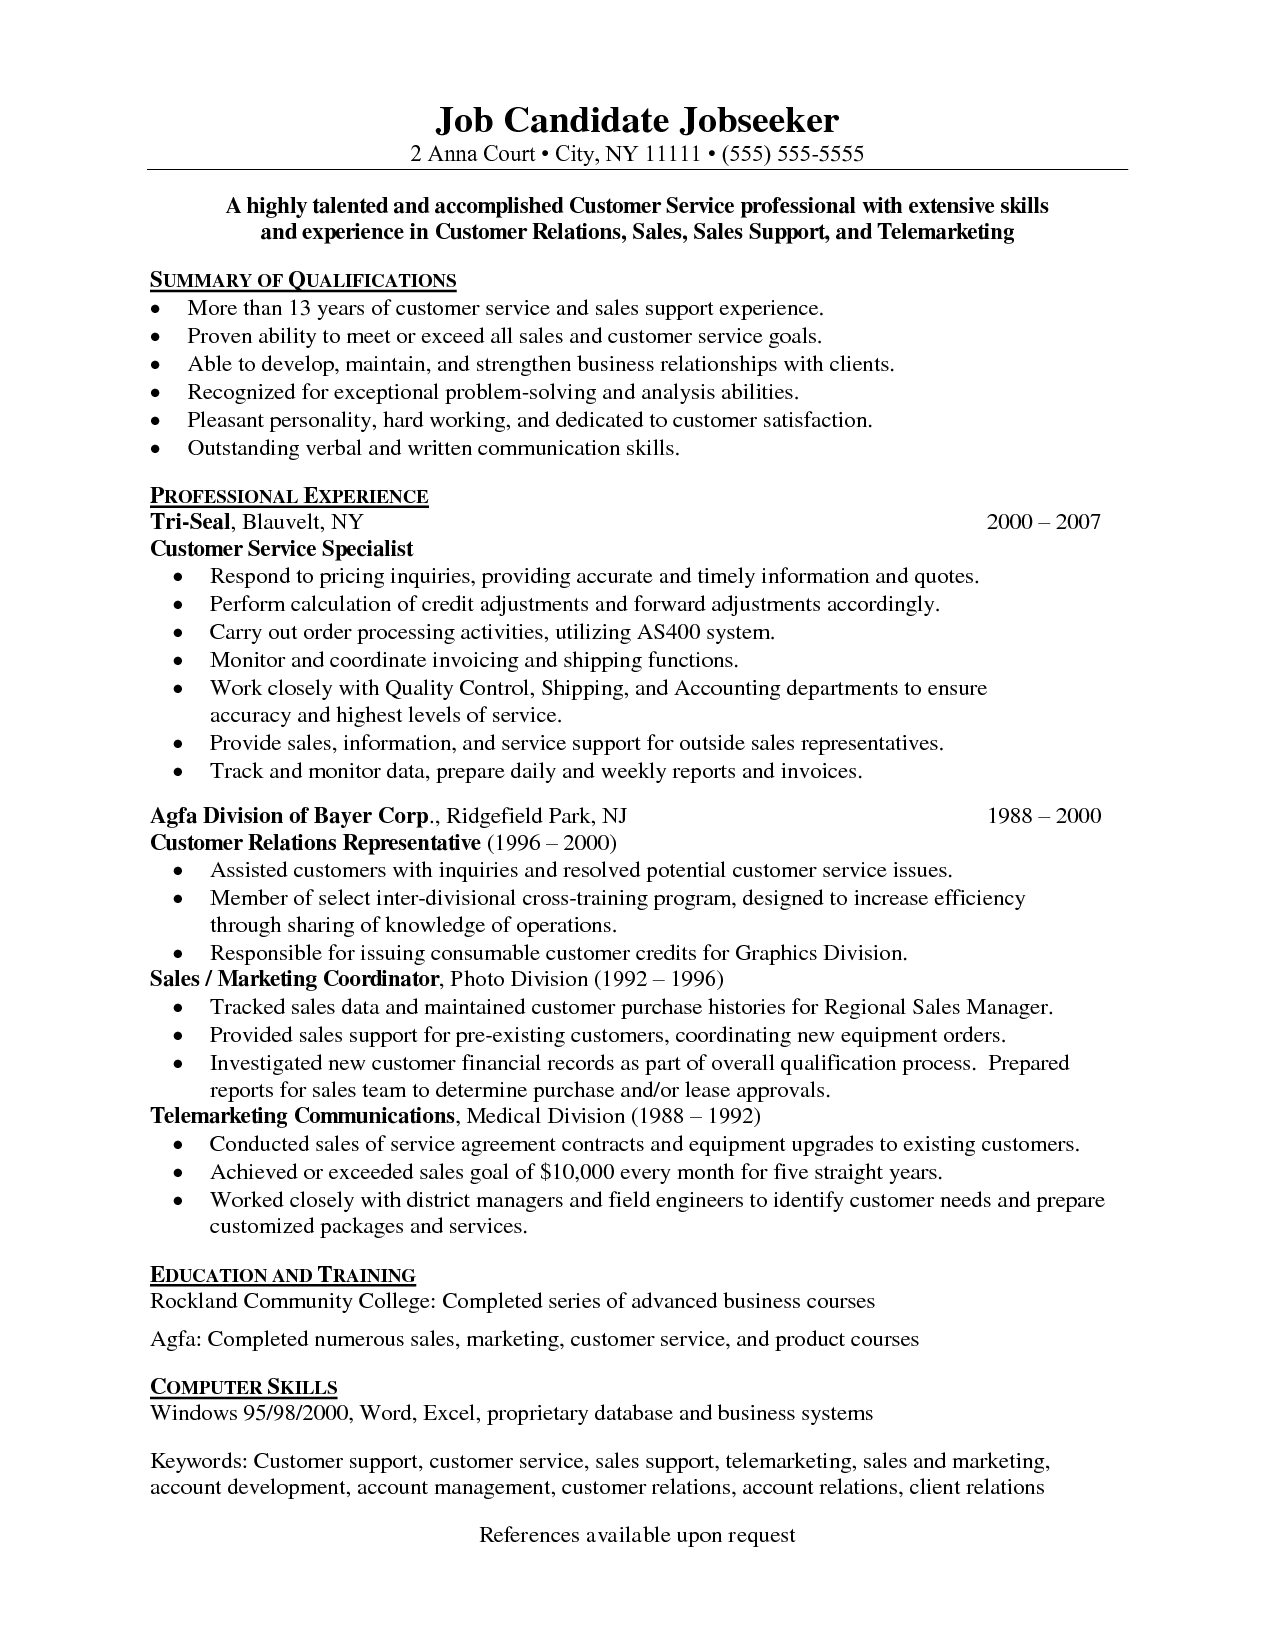 Customer Service Resume No Customer Service Experience Resume Template  Objectives For Customer Service Resumes Customer Customer  Resume Example Customer Service